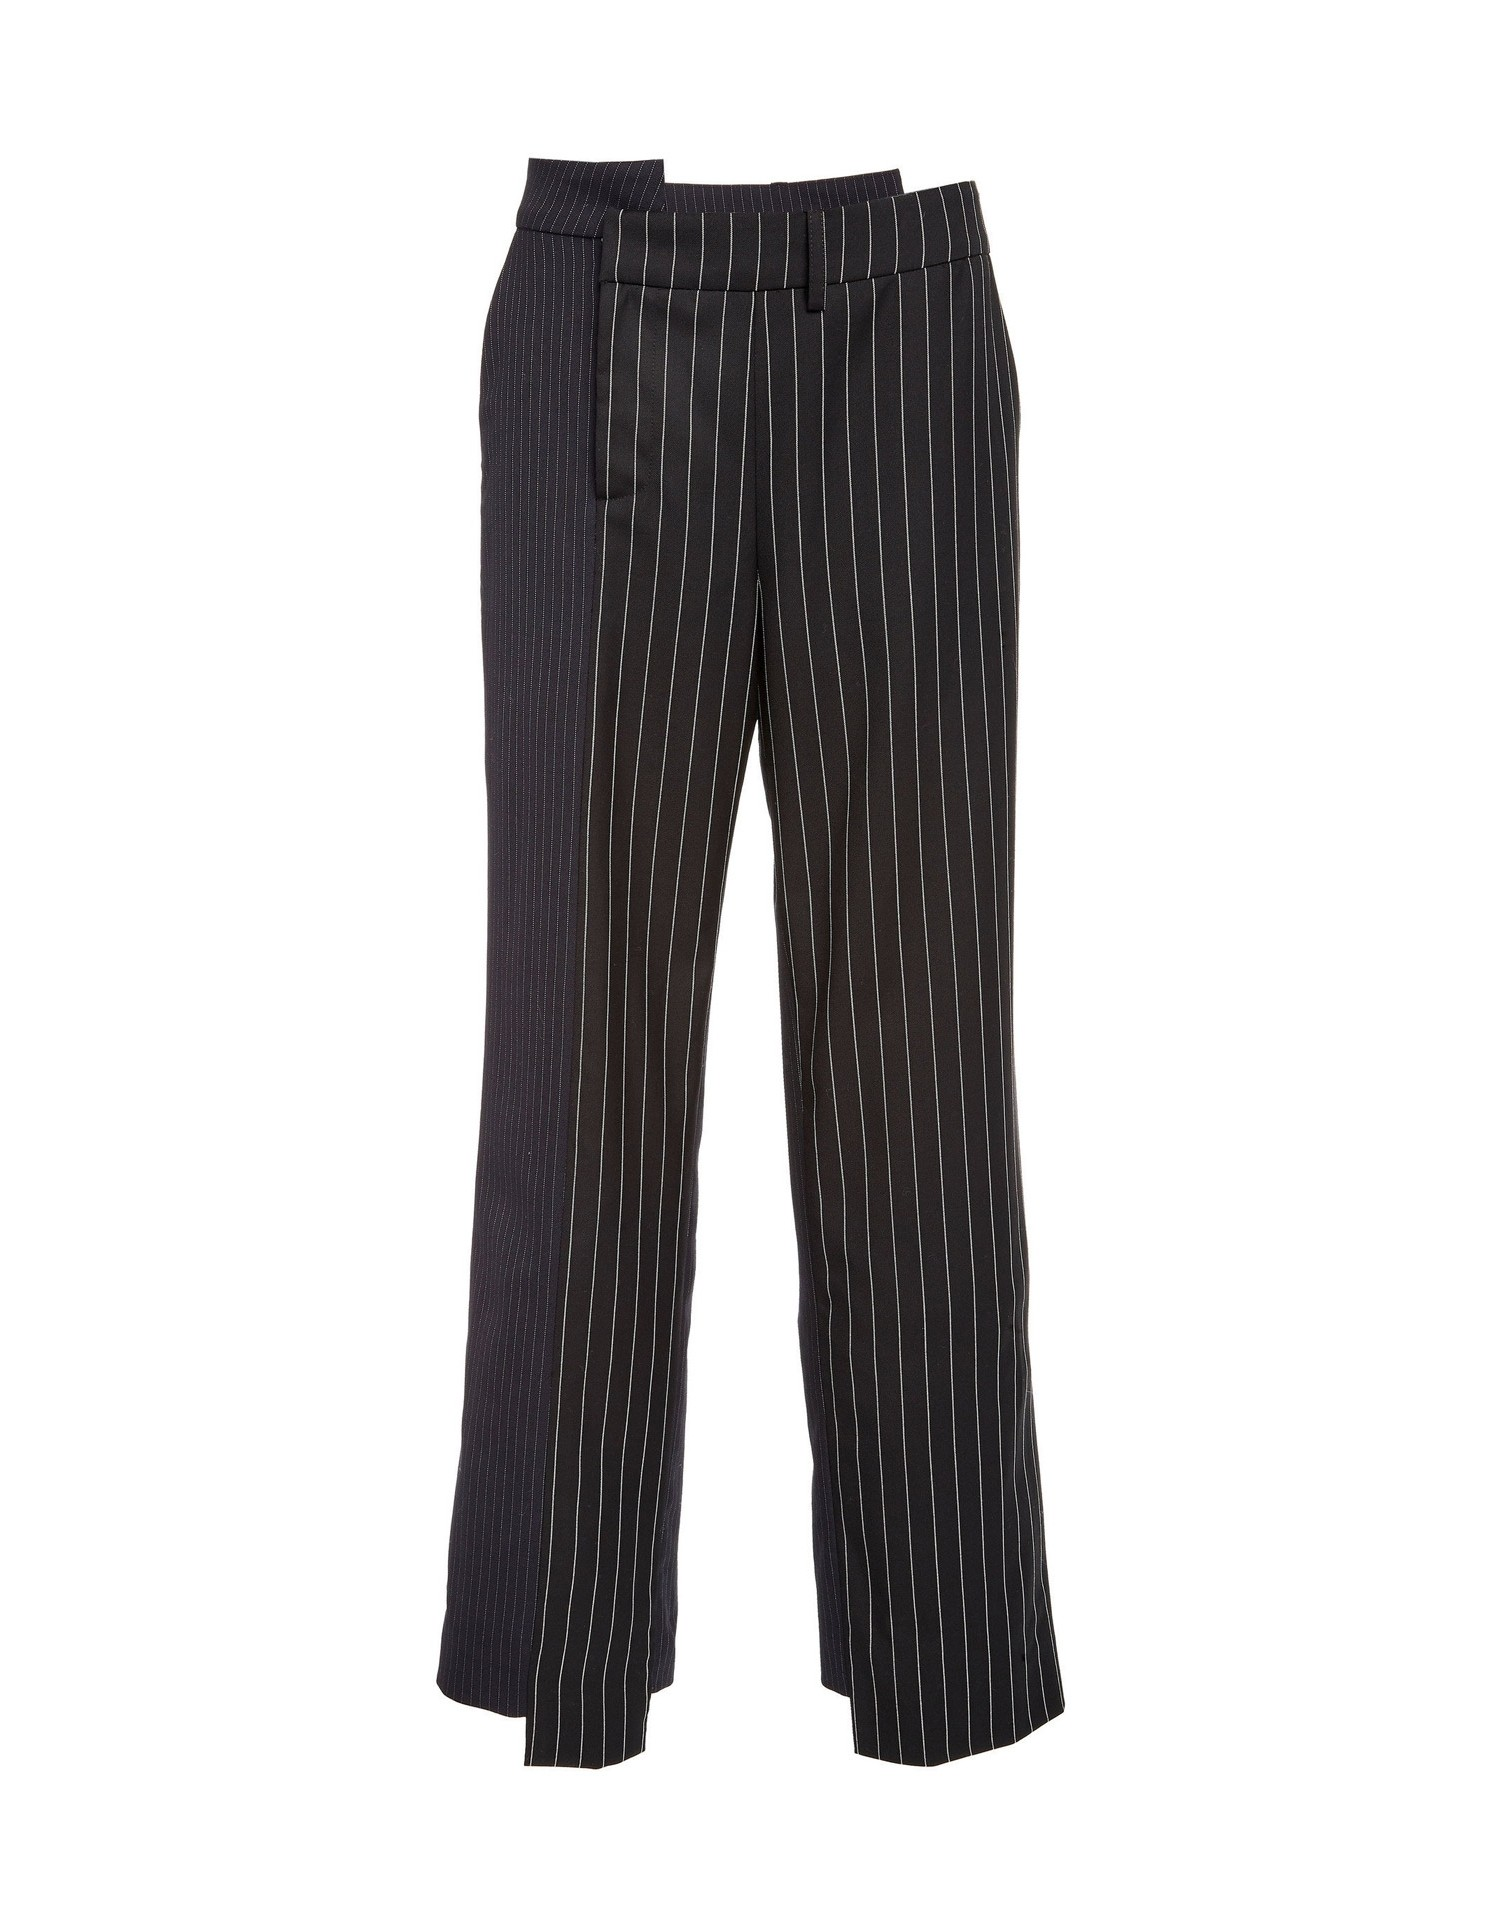 MONSE Two Tone Pinstripe Asymmetrical Pant on Model Front View